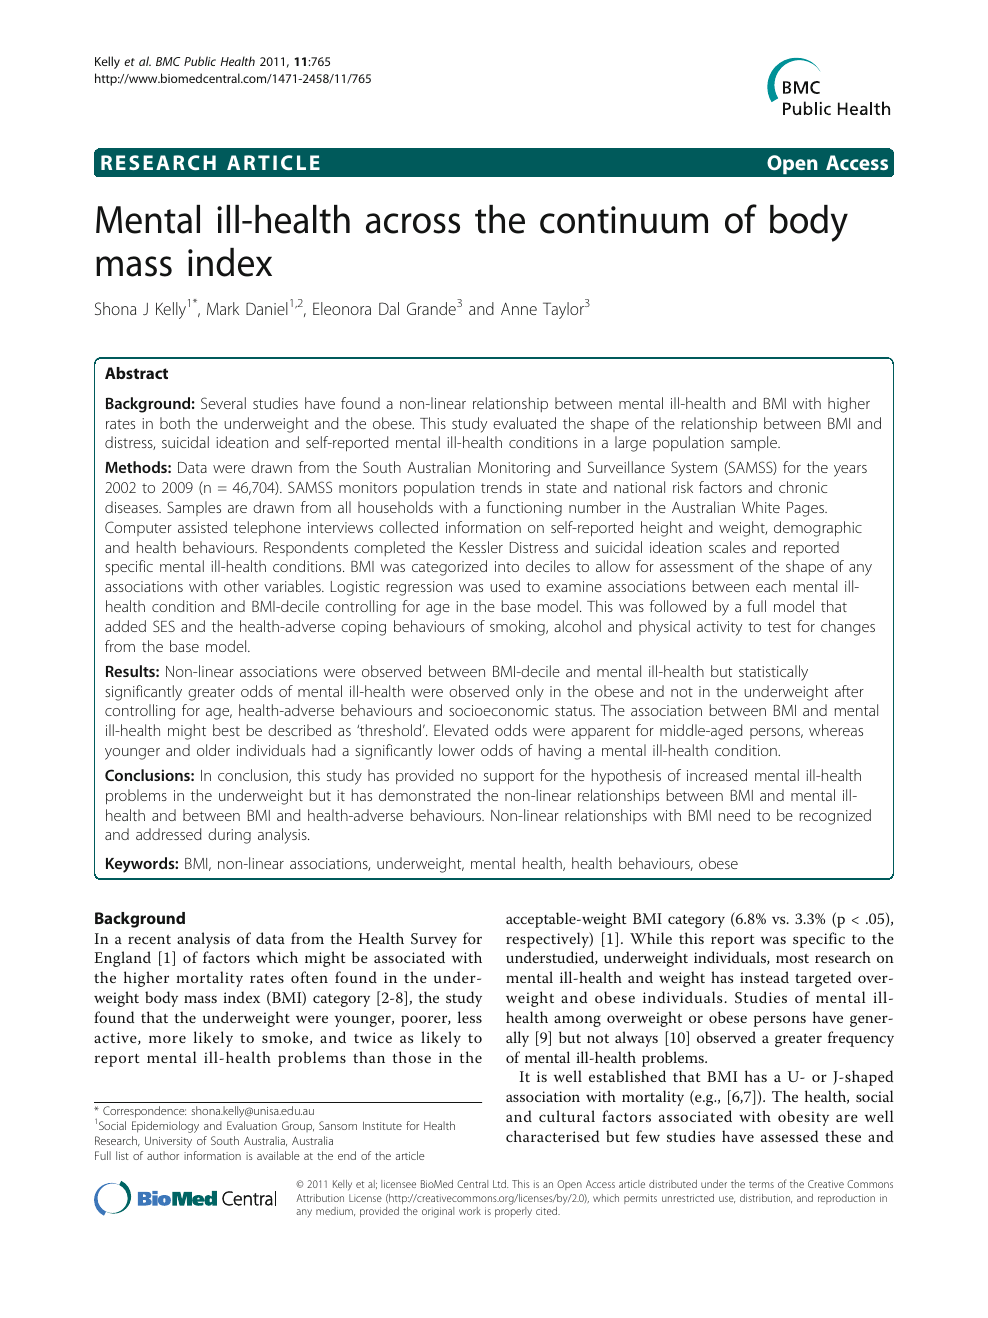 Mental ill health across the continuum of body mass index – topic ...